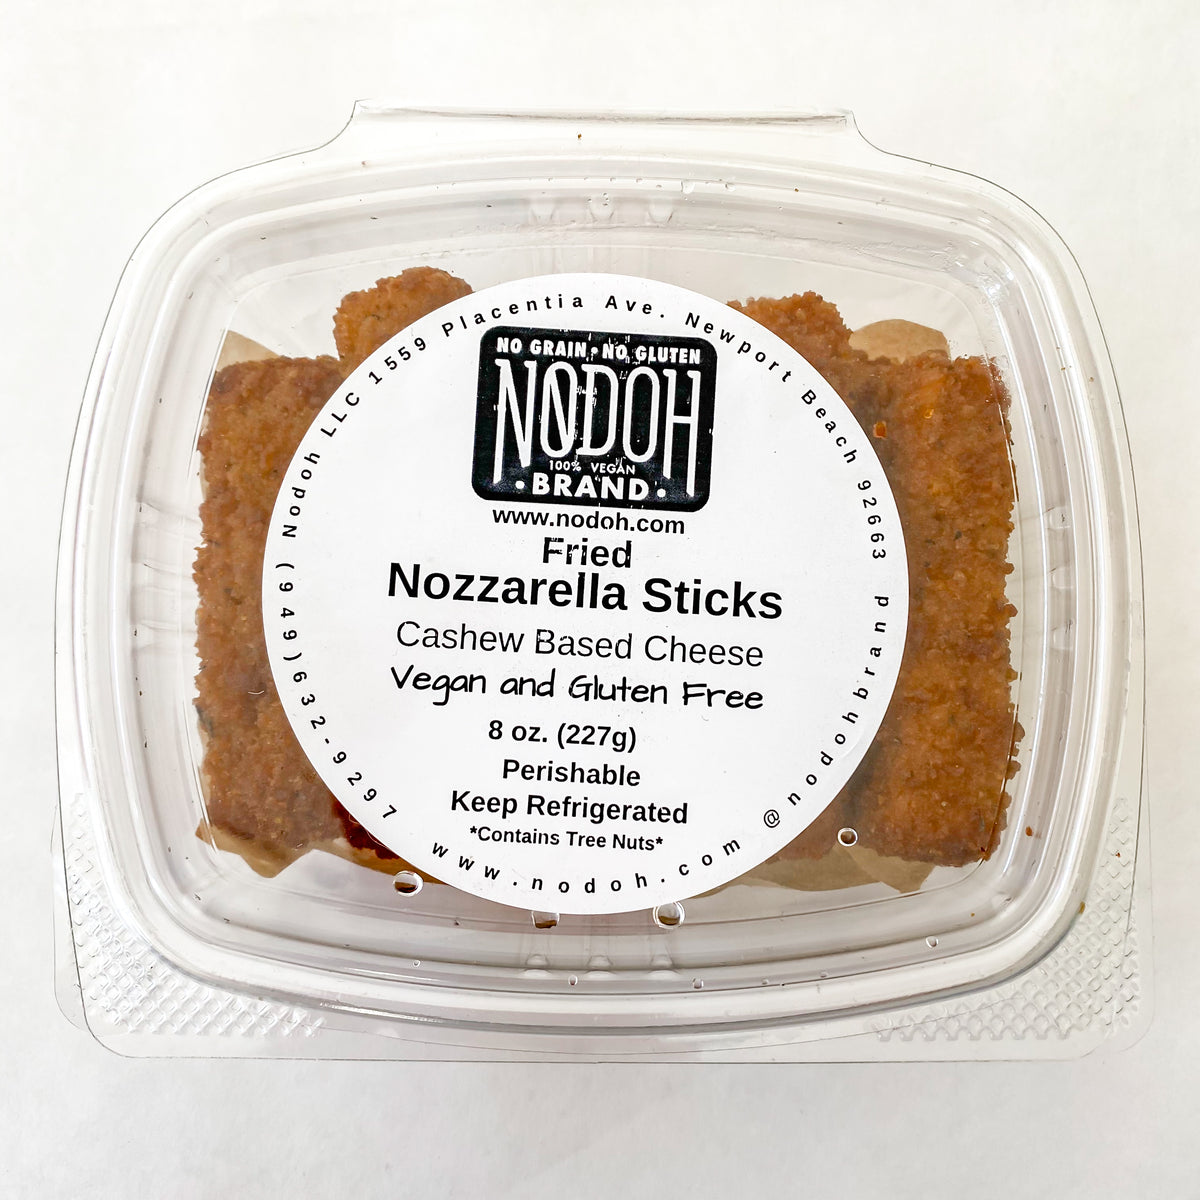 NoDoh Nozzarella Sticks